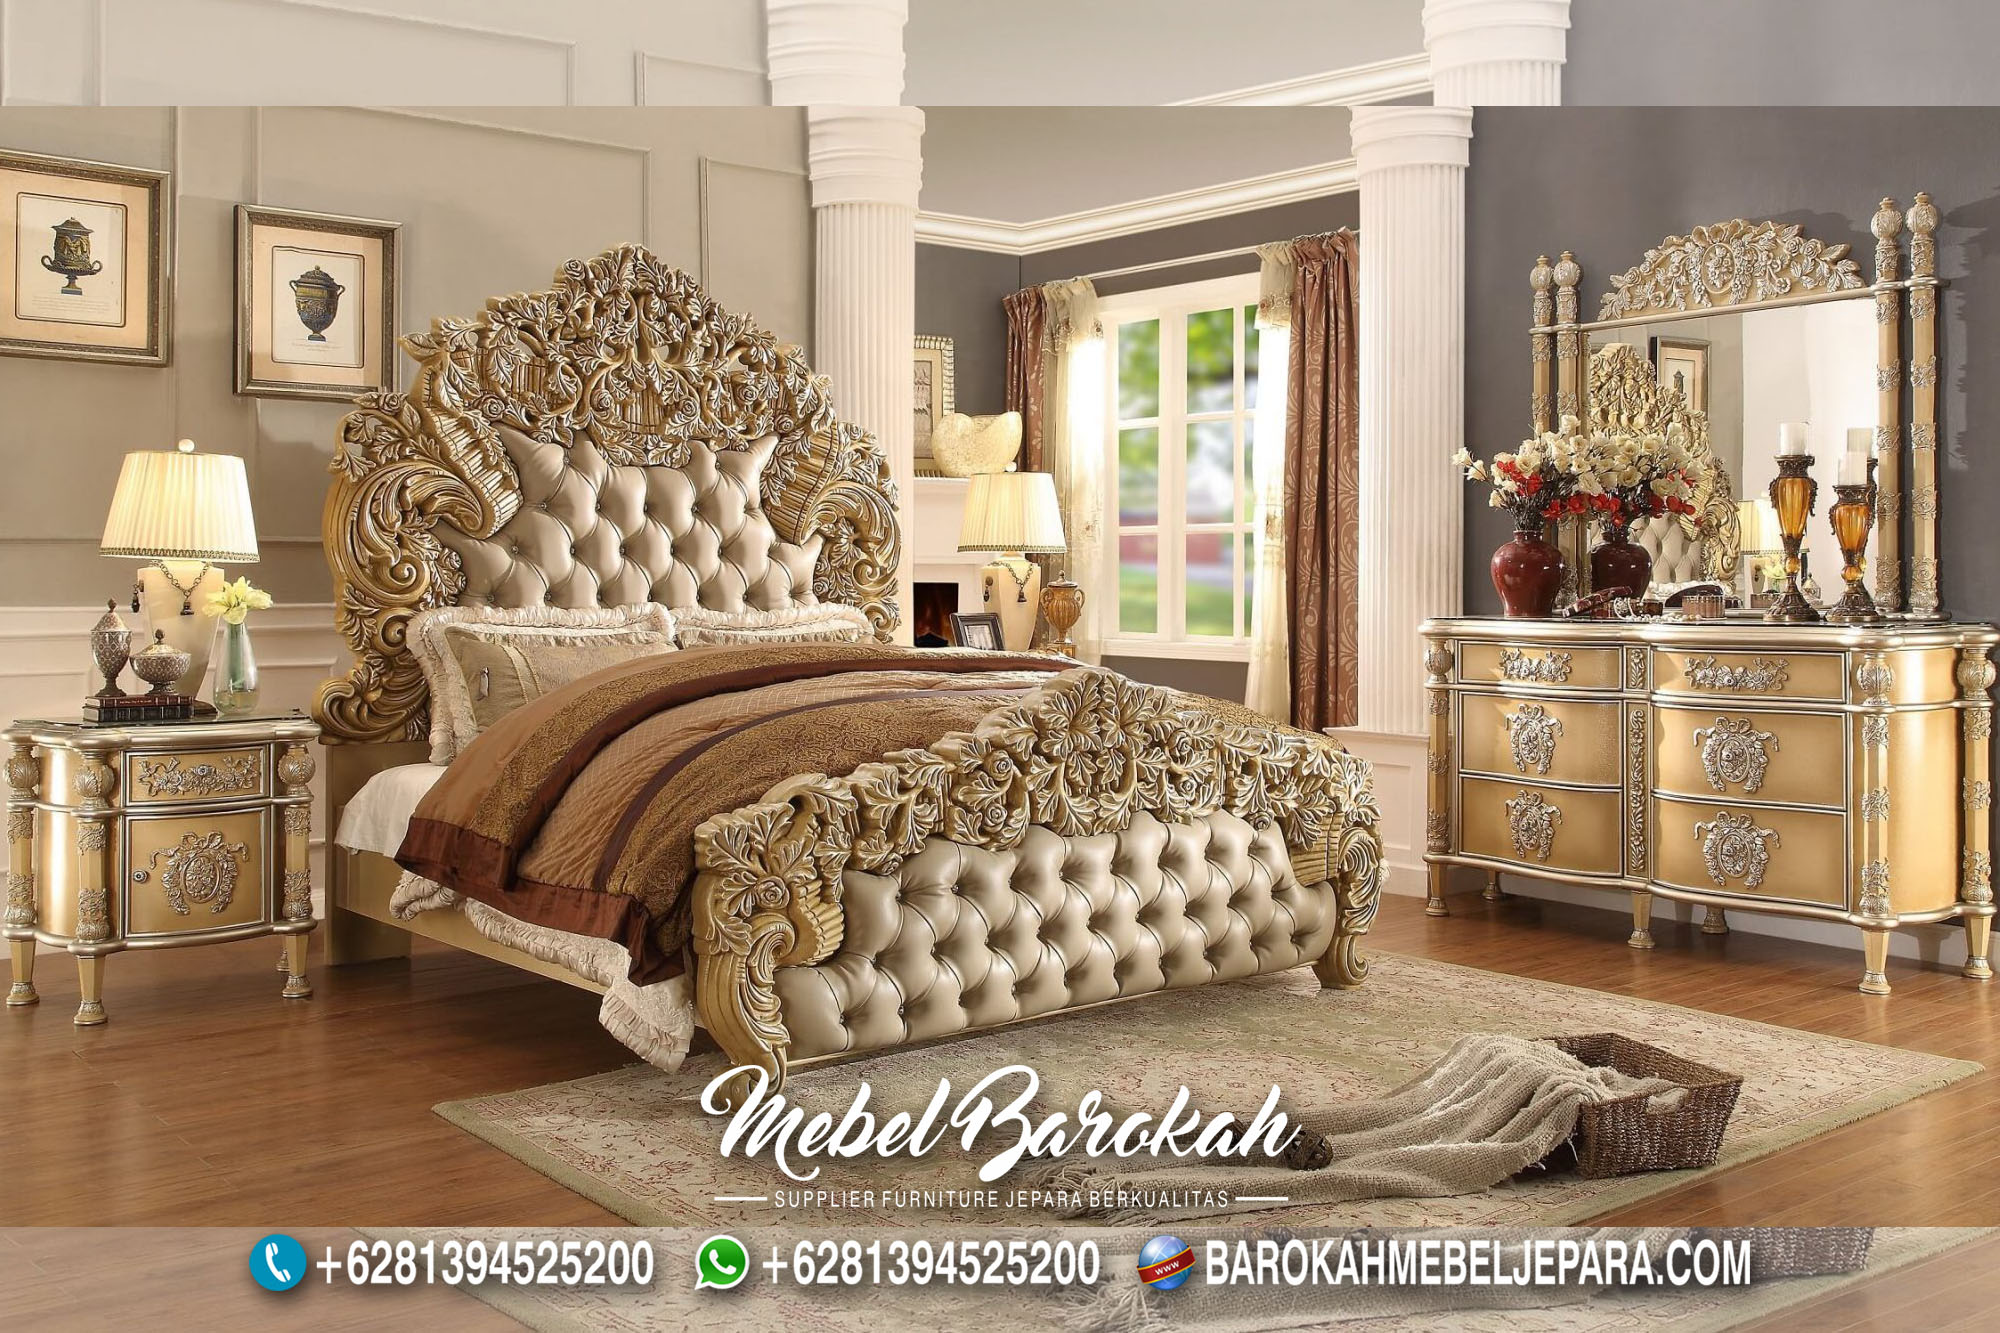 New Bedroom Set Desain Victorian Casual JM-974